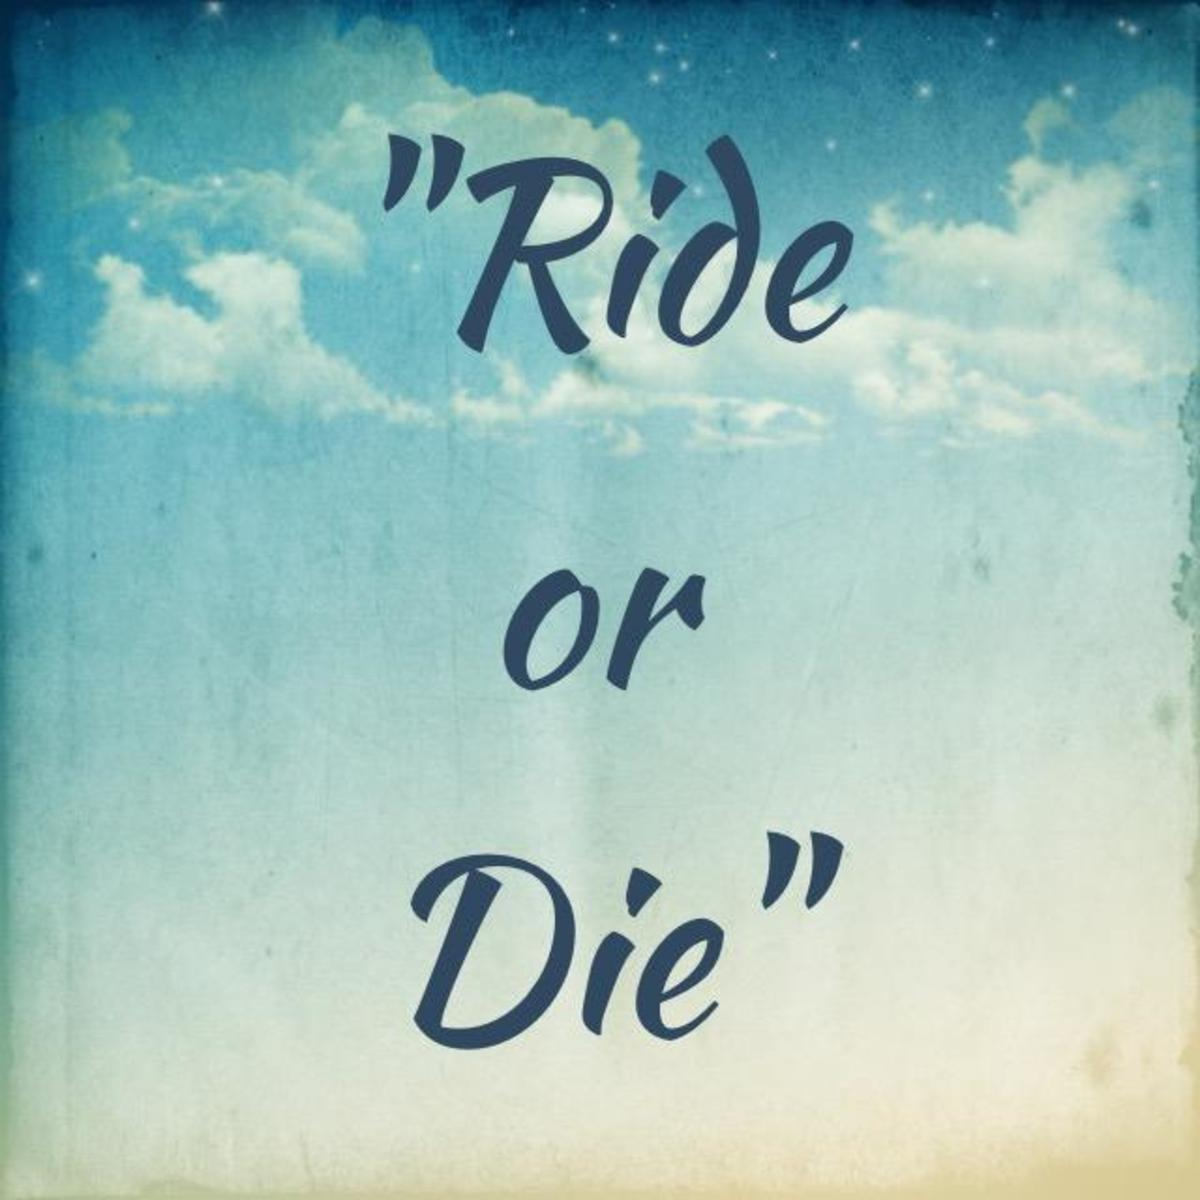 Ride or Die\': Original Meaning and What It Means Today ...